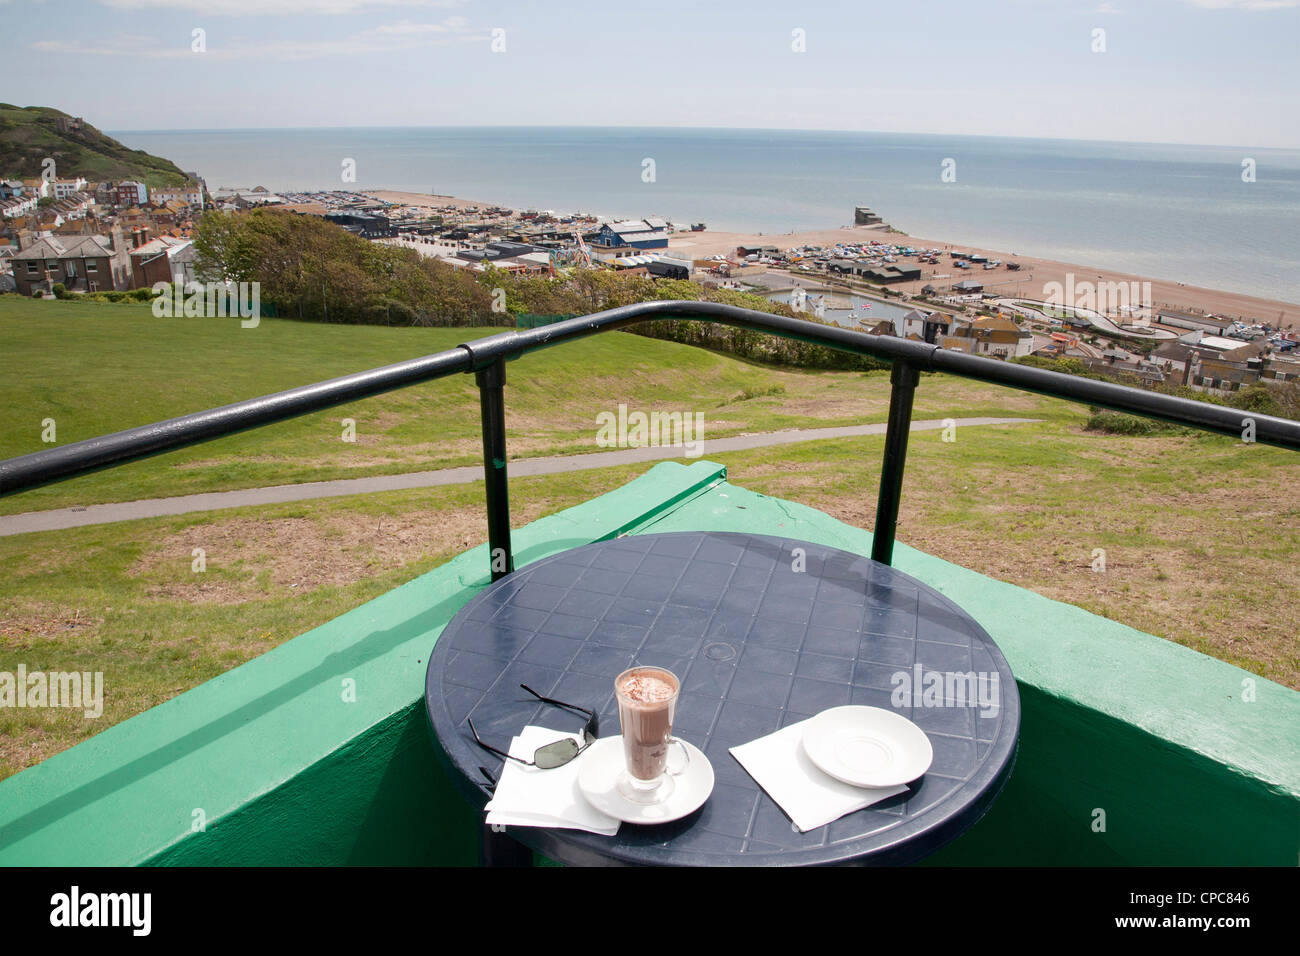 View from the West Hill cafe towards Hastings seafront amusements - Stock Image